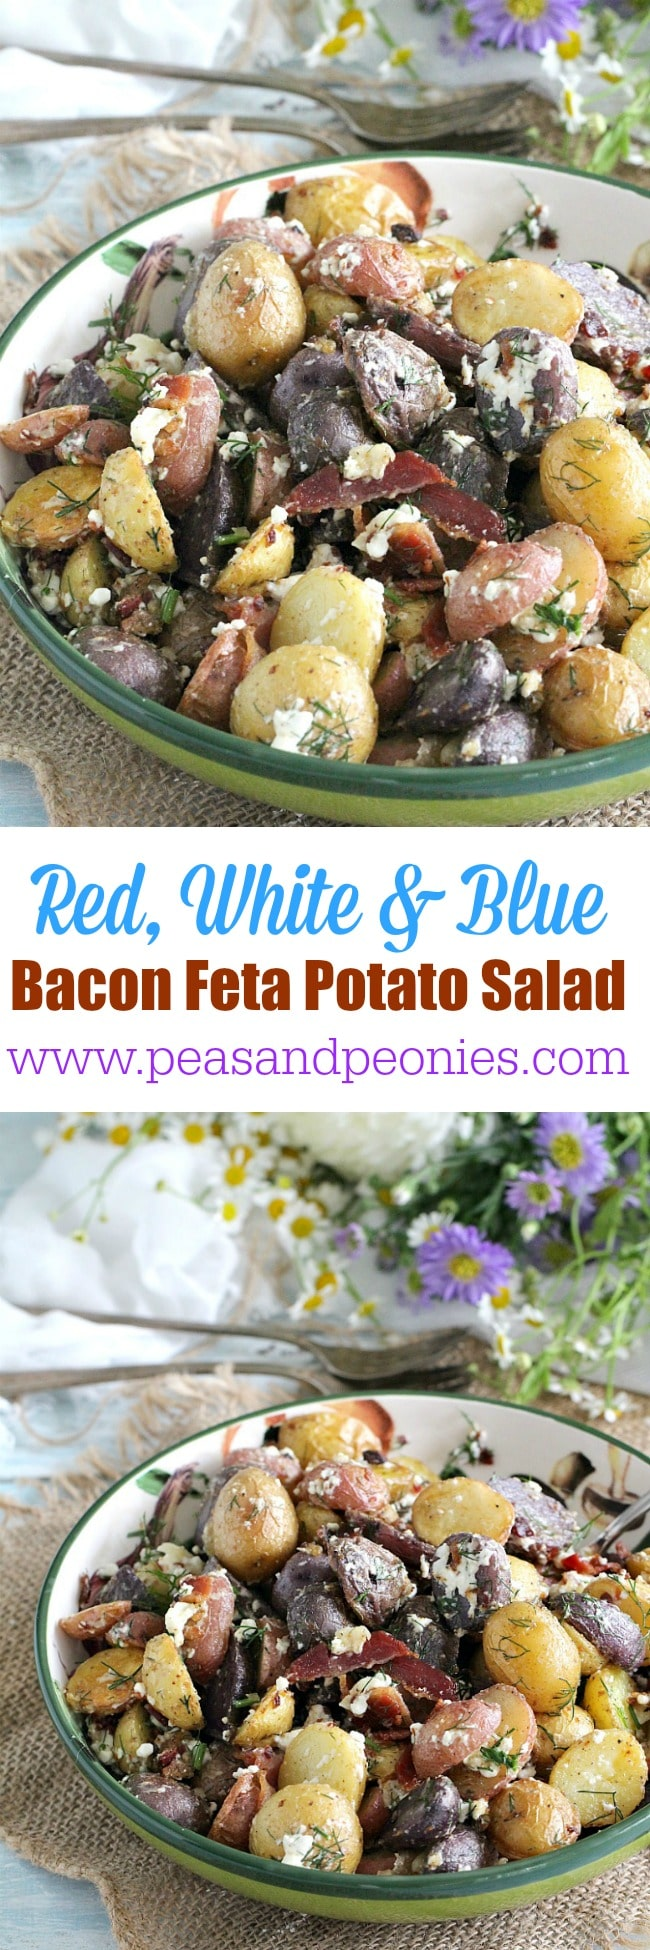 Mayo free and gluten free this Red, White and Blue Bacon Feta Potato Salad is tender, loaded with garlic flavor and beautiful different textures and colors.